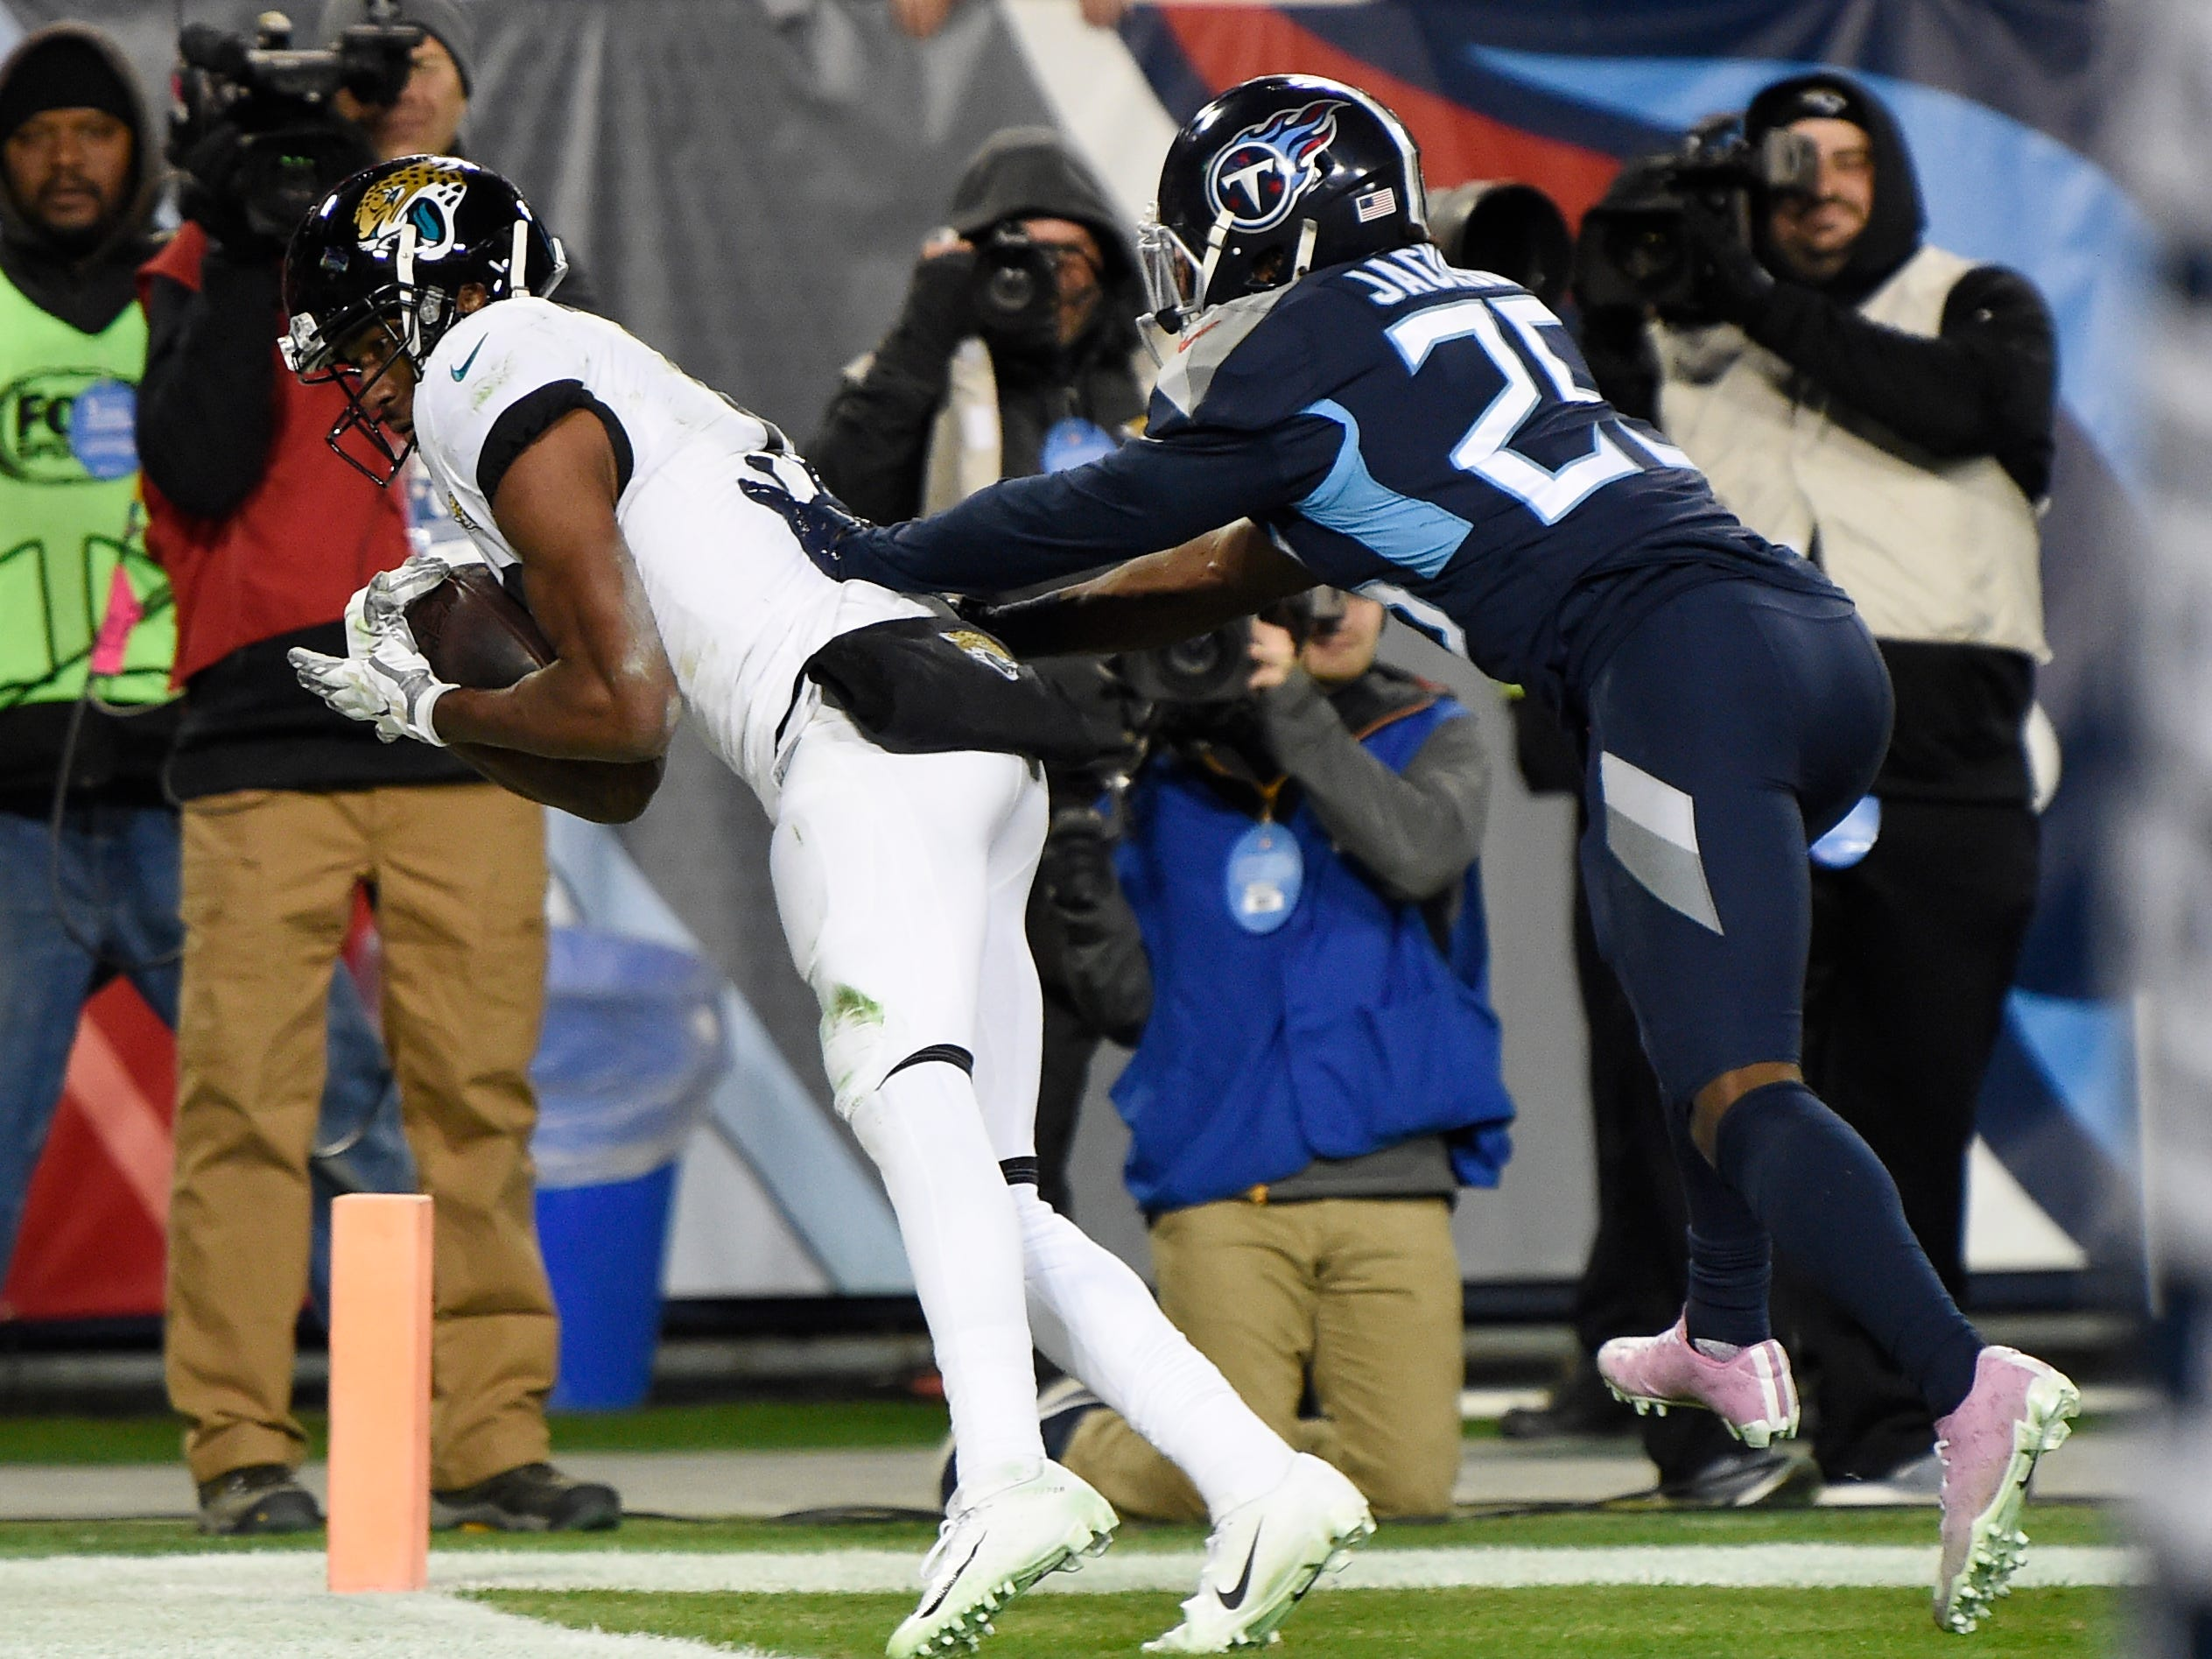 Jaguars wide receiver Dede Westbrook (12) gets into the end zone for a touchdown defended by Titans cornerback Adoree' Jackson (25) in the third quarter at Nissan Stadium Thursday, Dec. 6, 2018, in Nashville, Tenn.